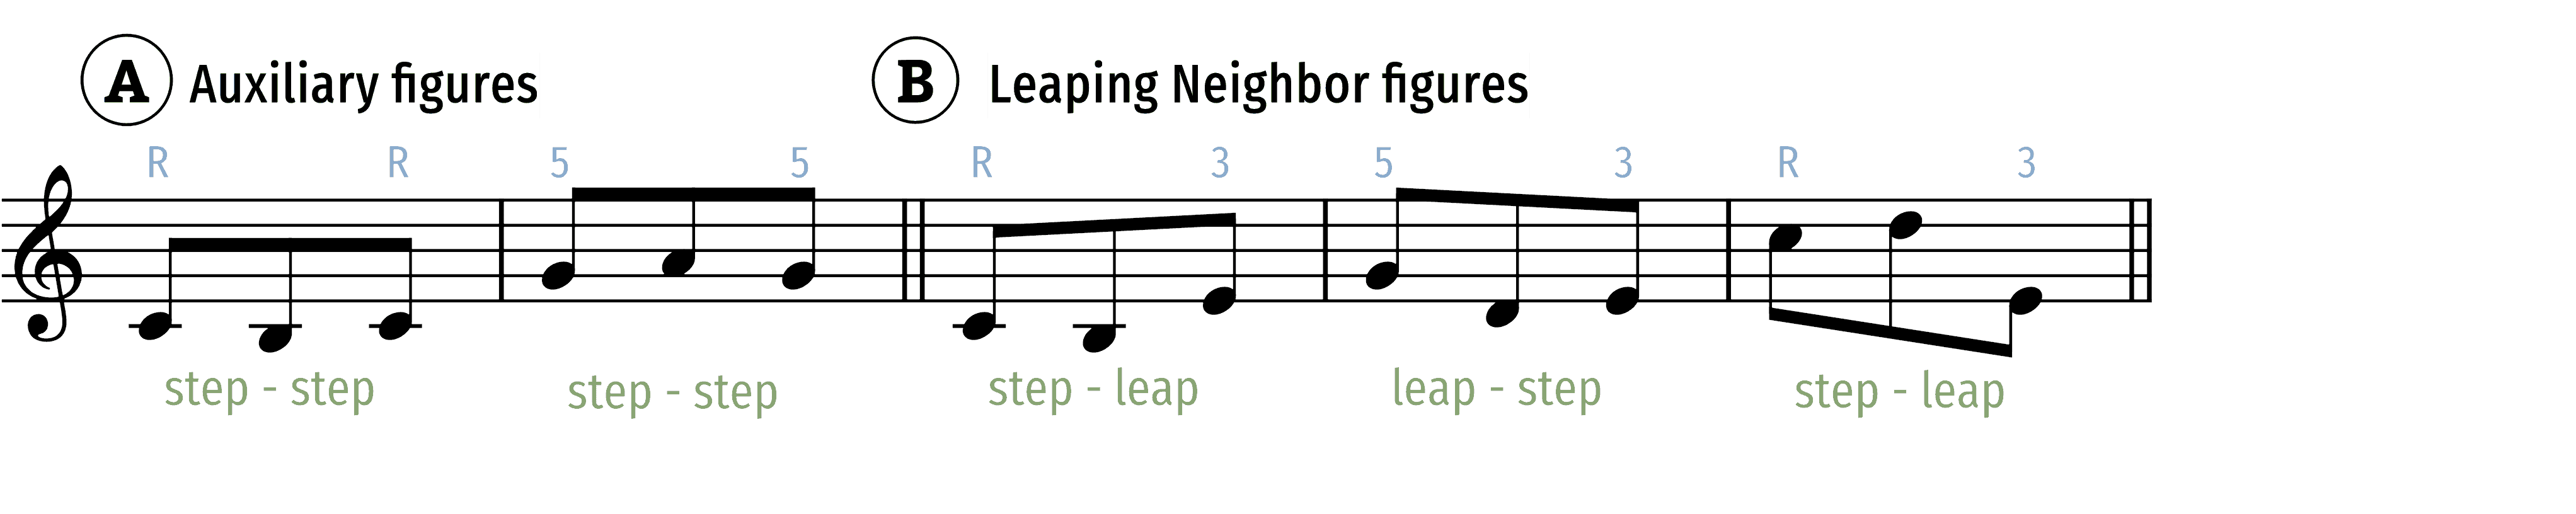 leaping-neighbor-auxiliary-comparison